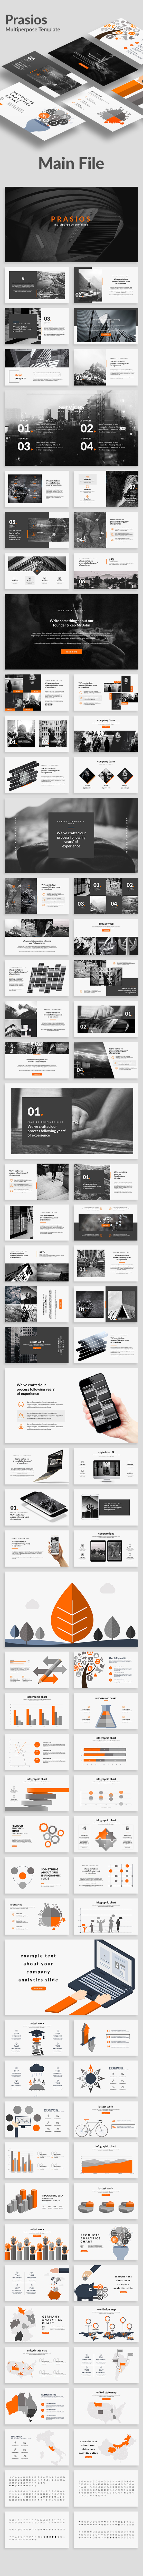 Prasios Multipurpose Google Slide Template - Google Slides Presentation Templates